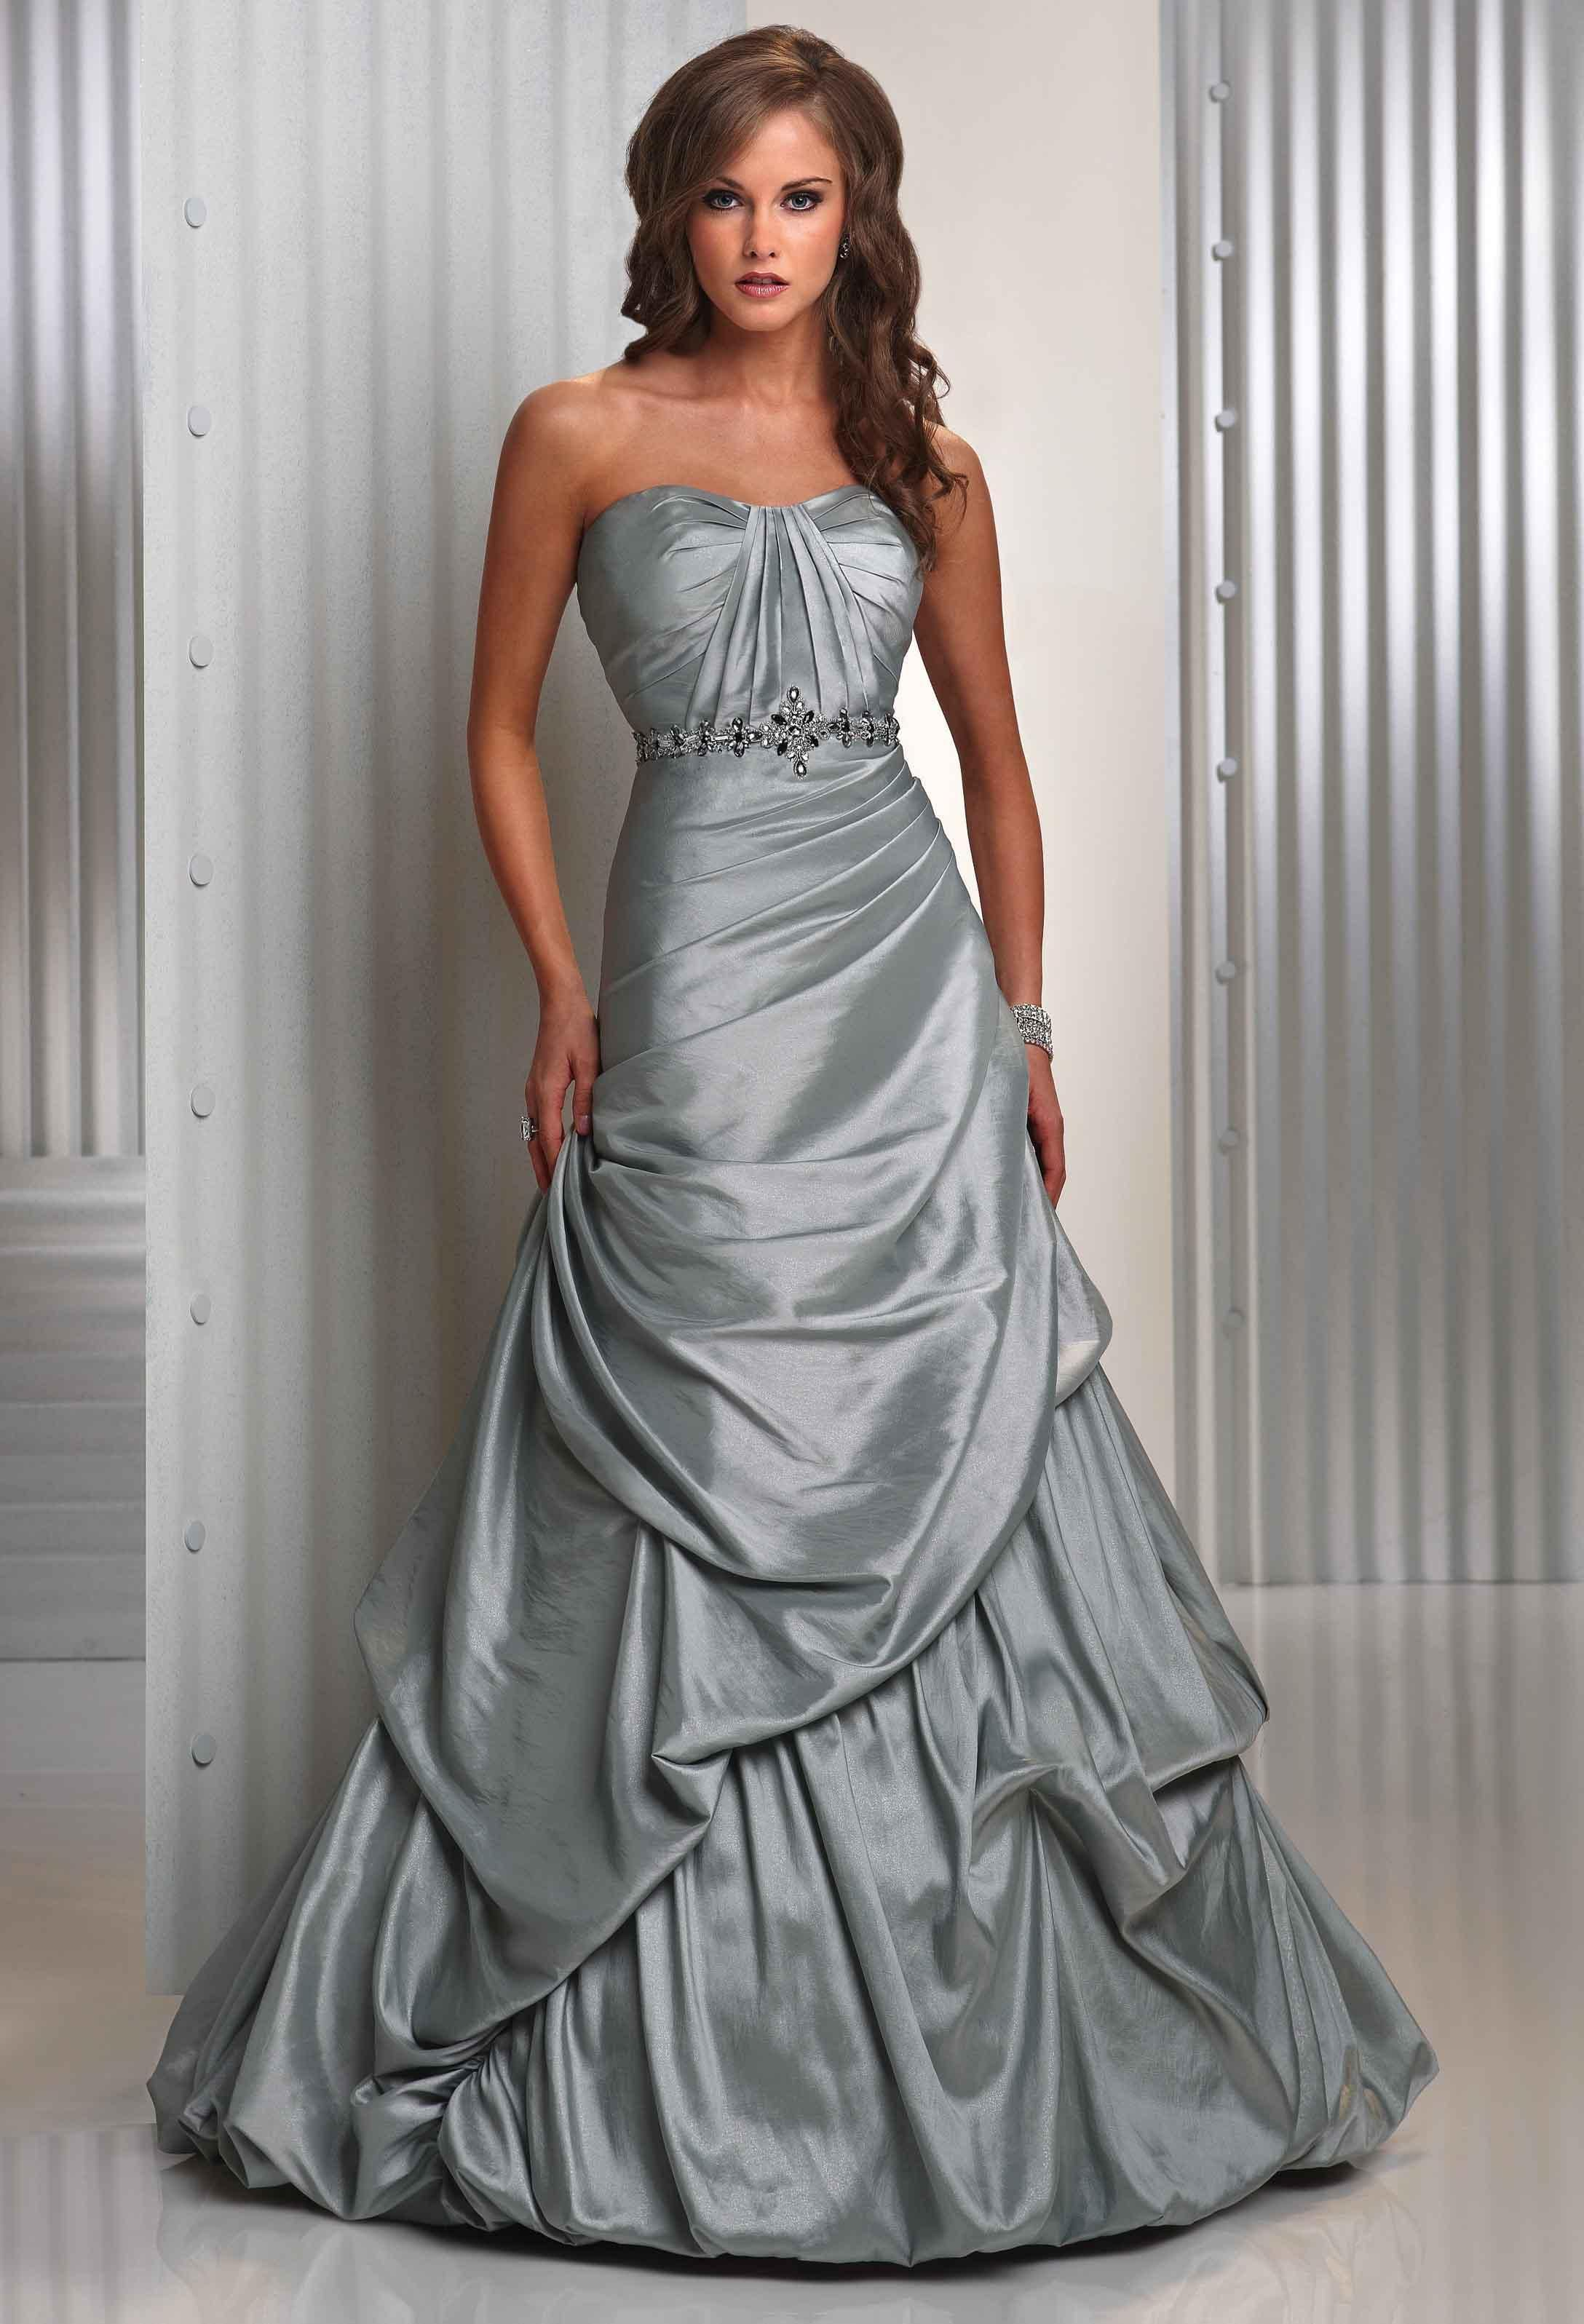 Evening Dresses Silver Shimmer Taffeta Strapless Sleeveless Floor ...